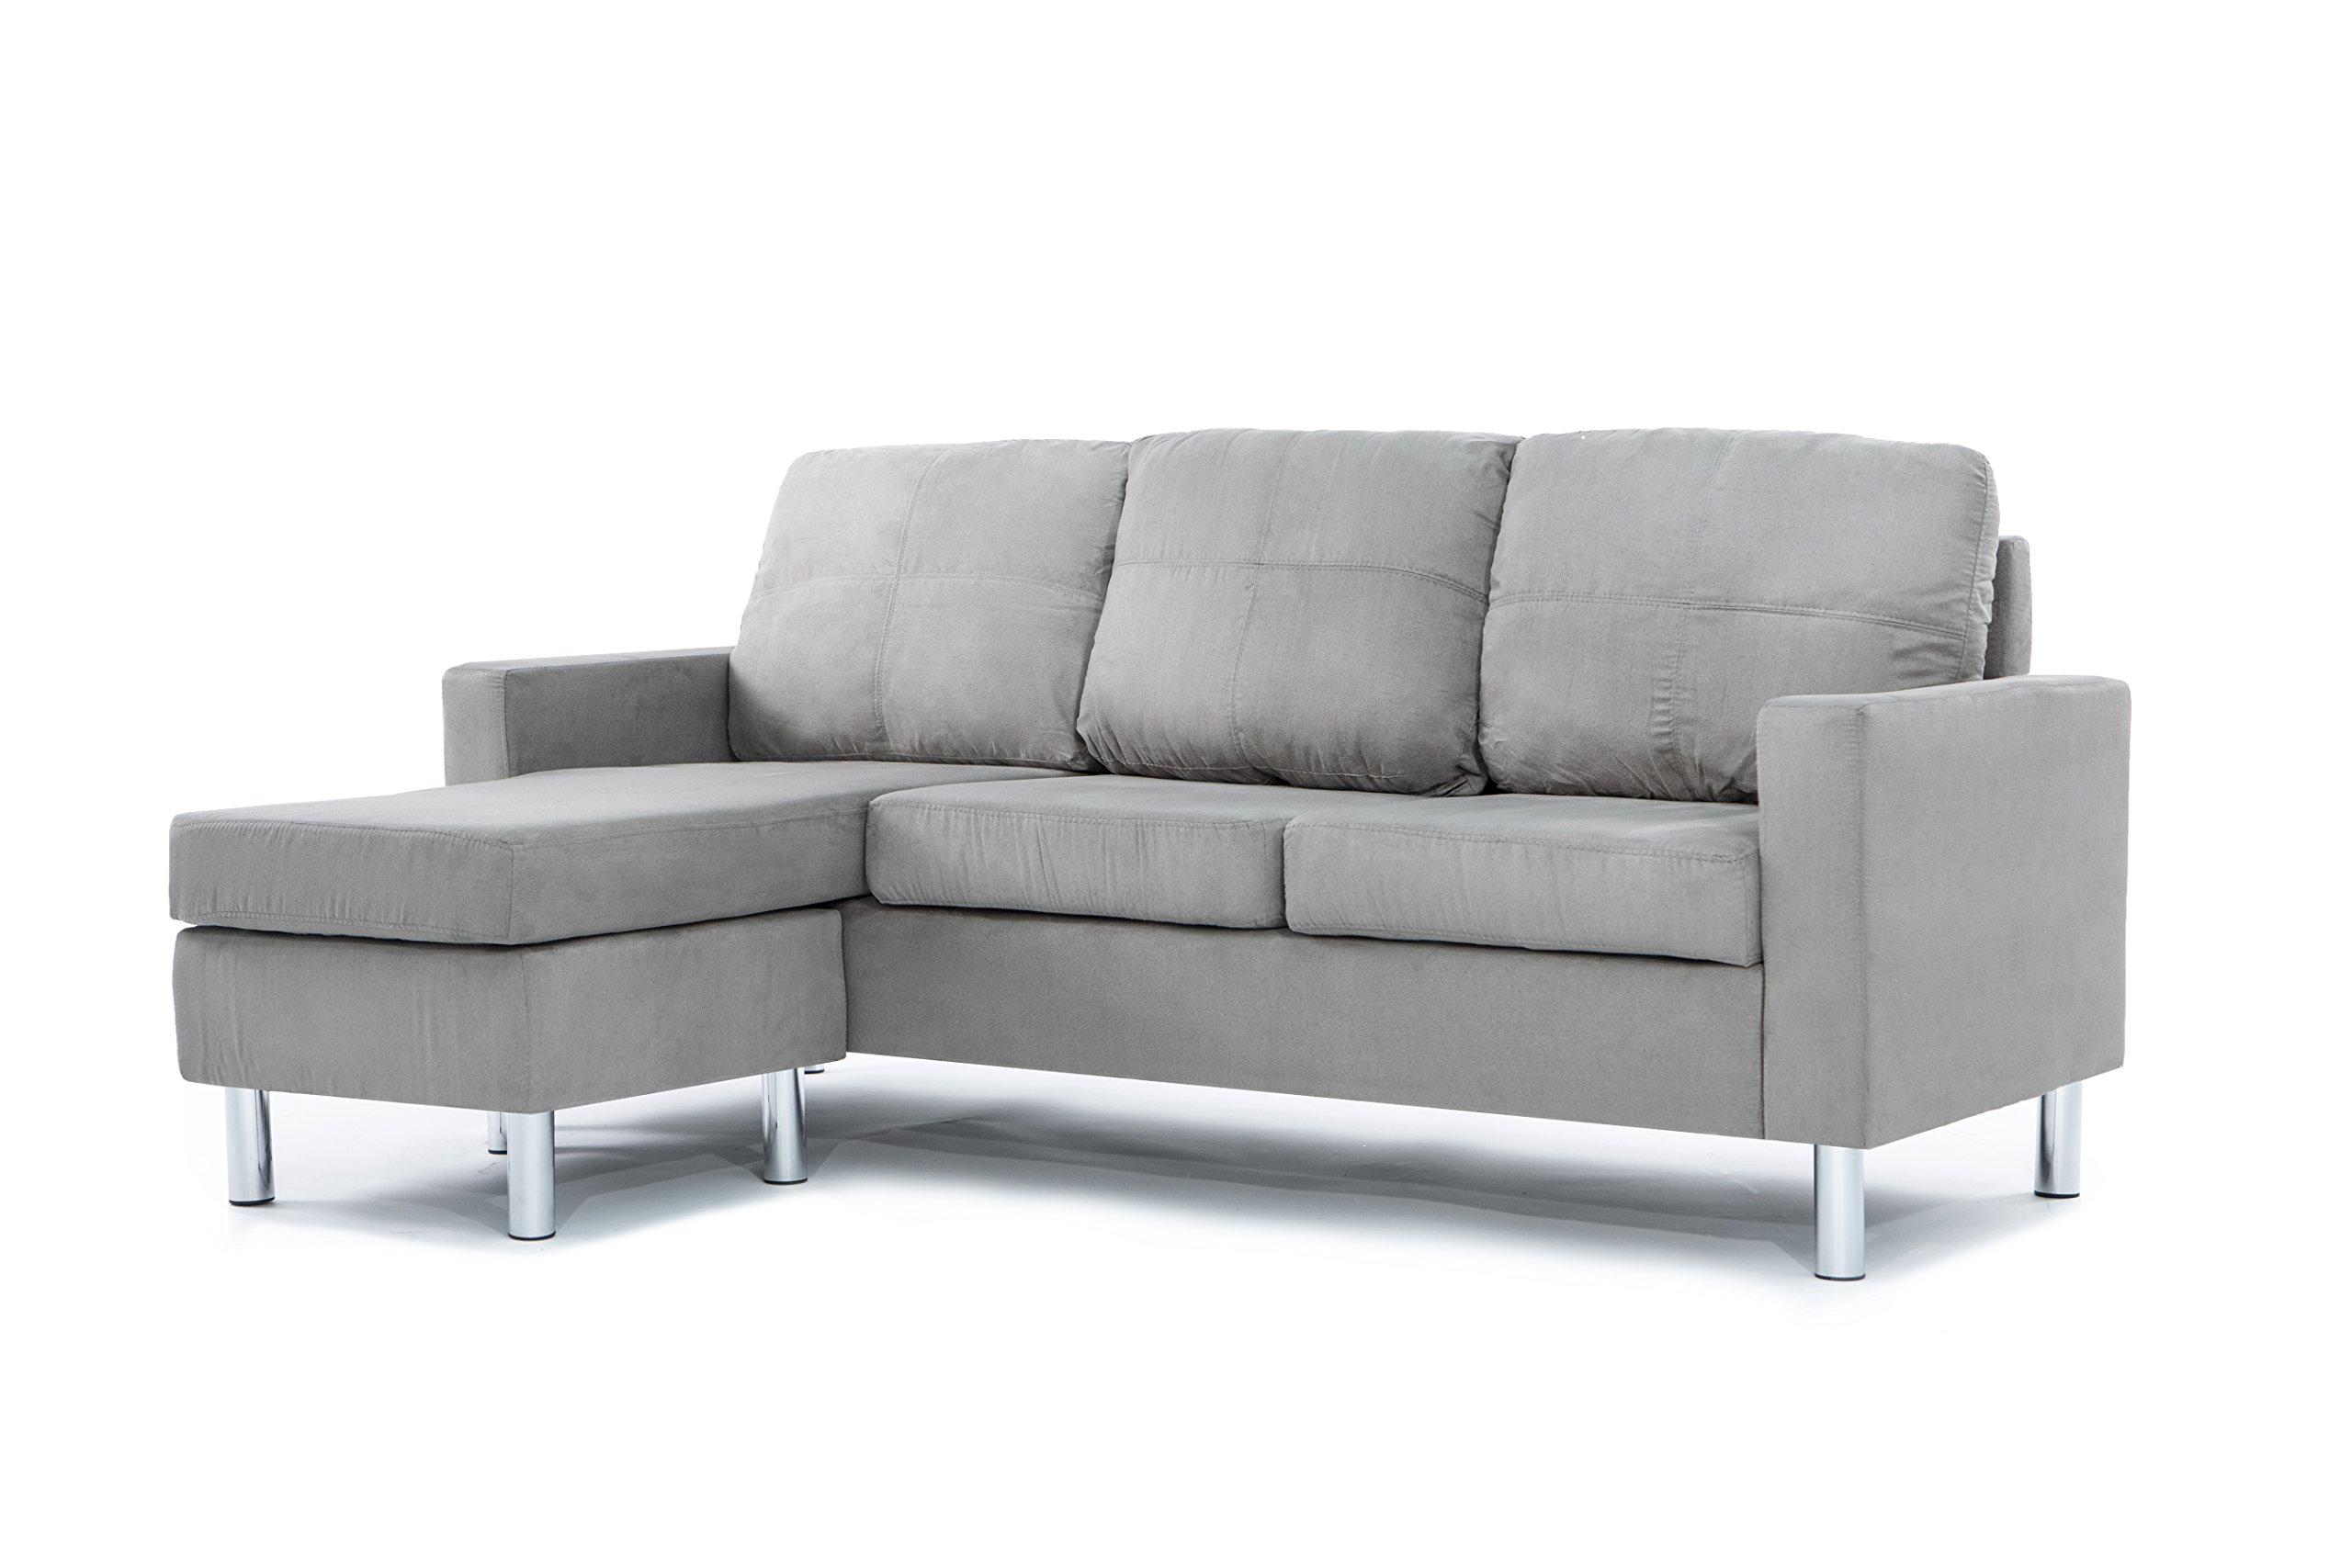 Modern Soft Brush Microfiber Sectional Sofa - Small Space Configurable Couch (Grey) by Divano Roma Furniture